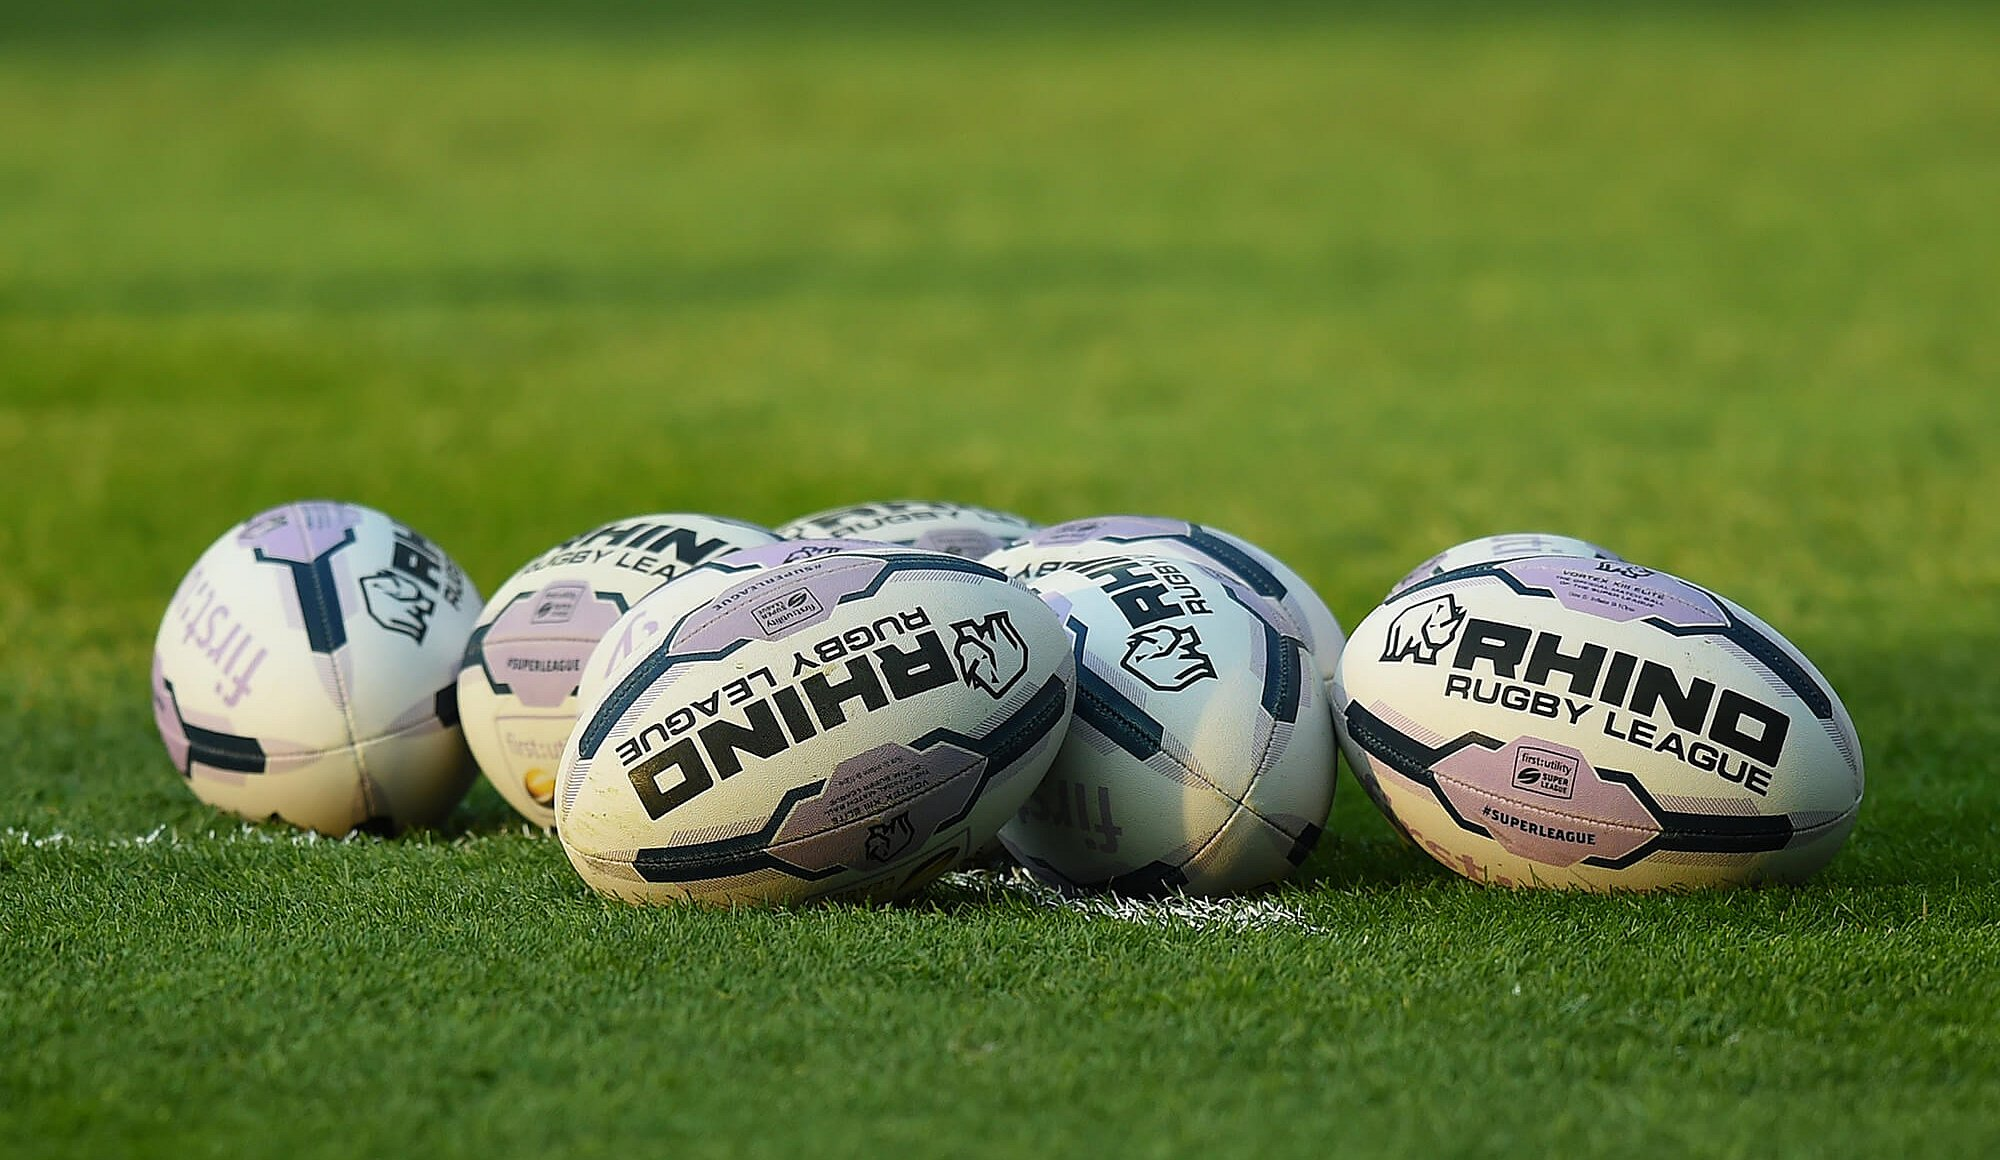 Under-19s: Huddersfield 13 Wigan 13